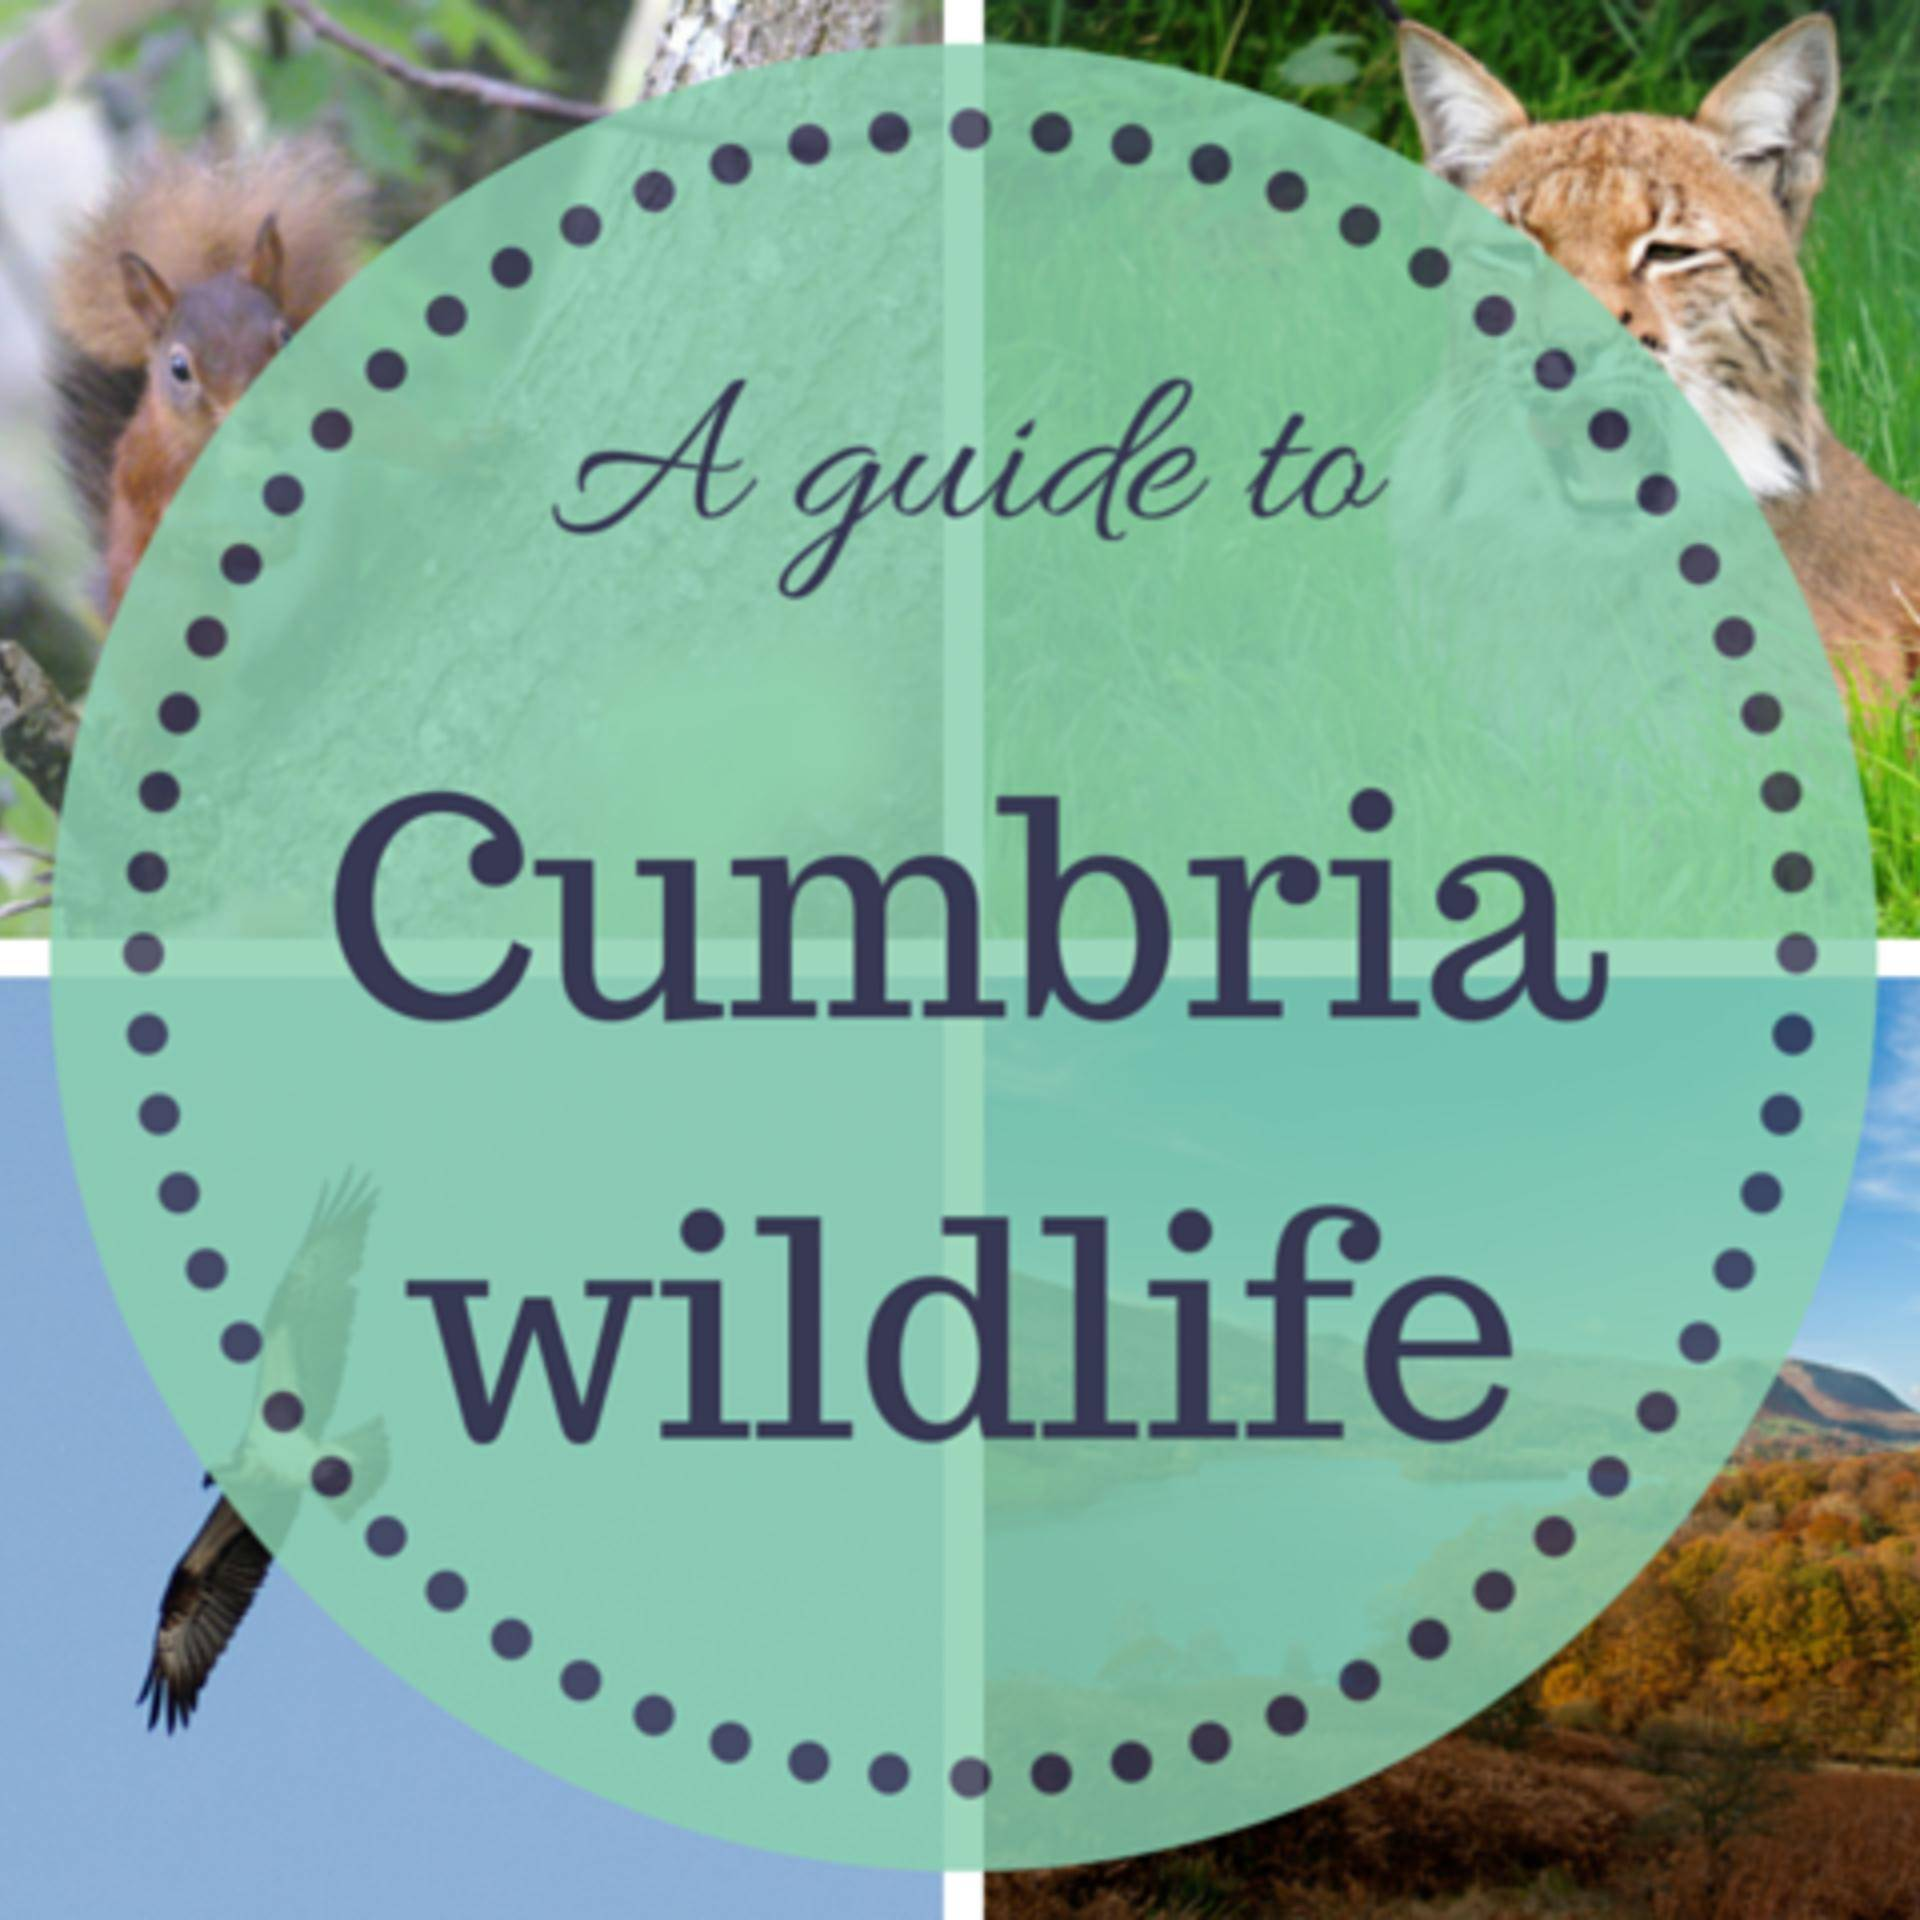 Cumbria wildlife